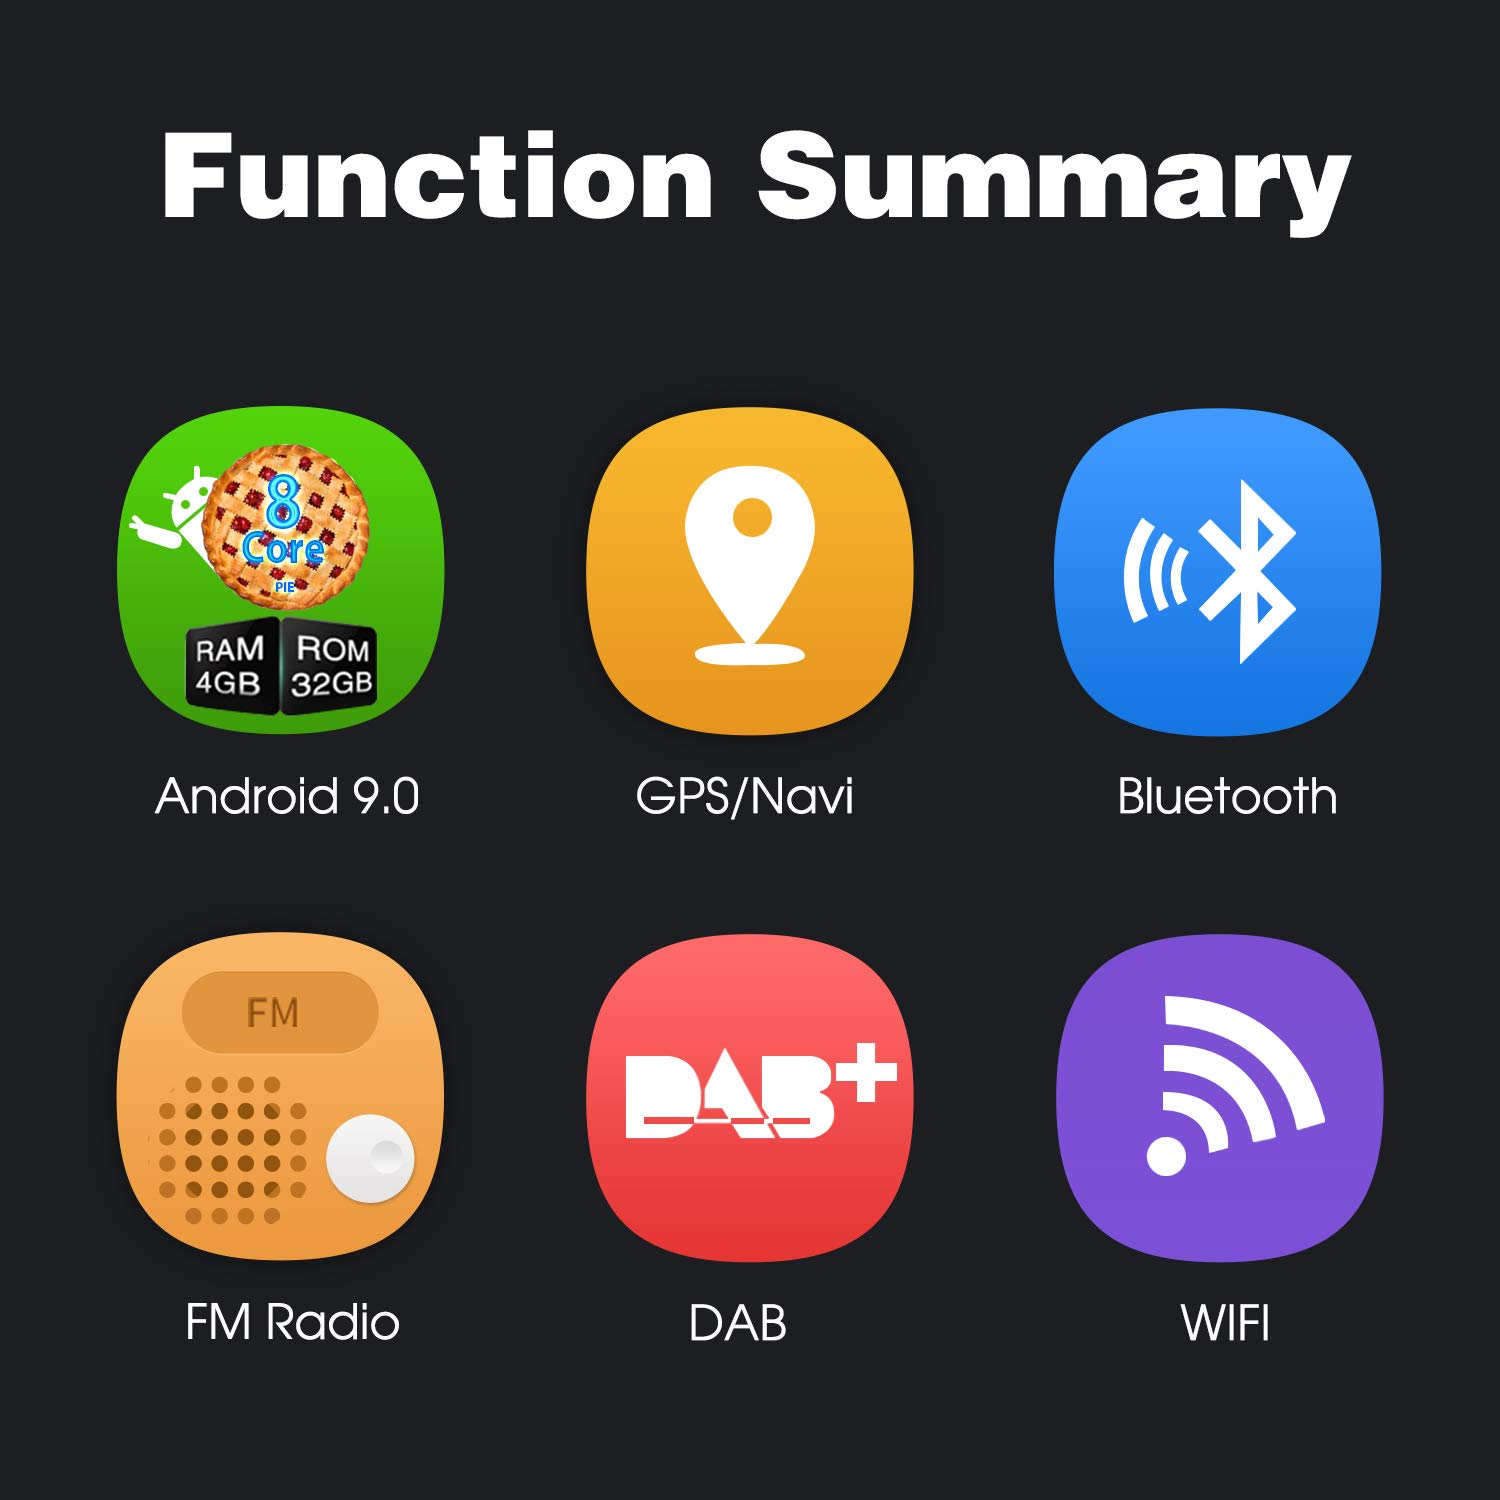 PUMPKIN 10.1 Inch Android 9.0 Double Din Car Stereo 4GB RAM with Bluetooth Sat Nav Support GPS Navigation DAB WIFI Android Auto USB SD Fast-boot Touch Screen